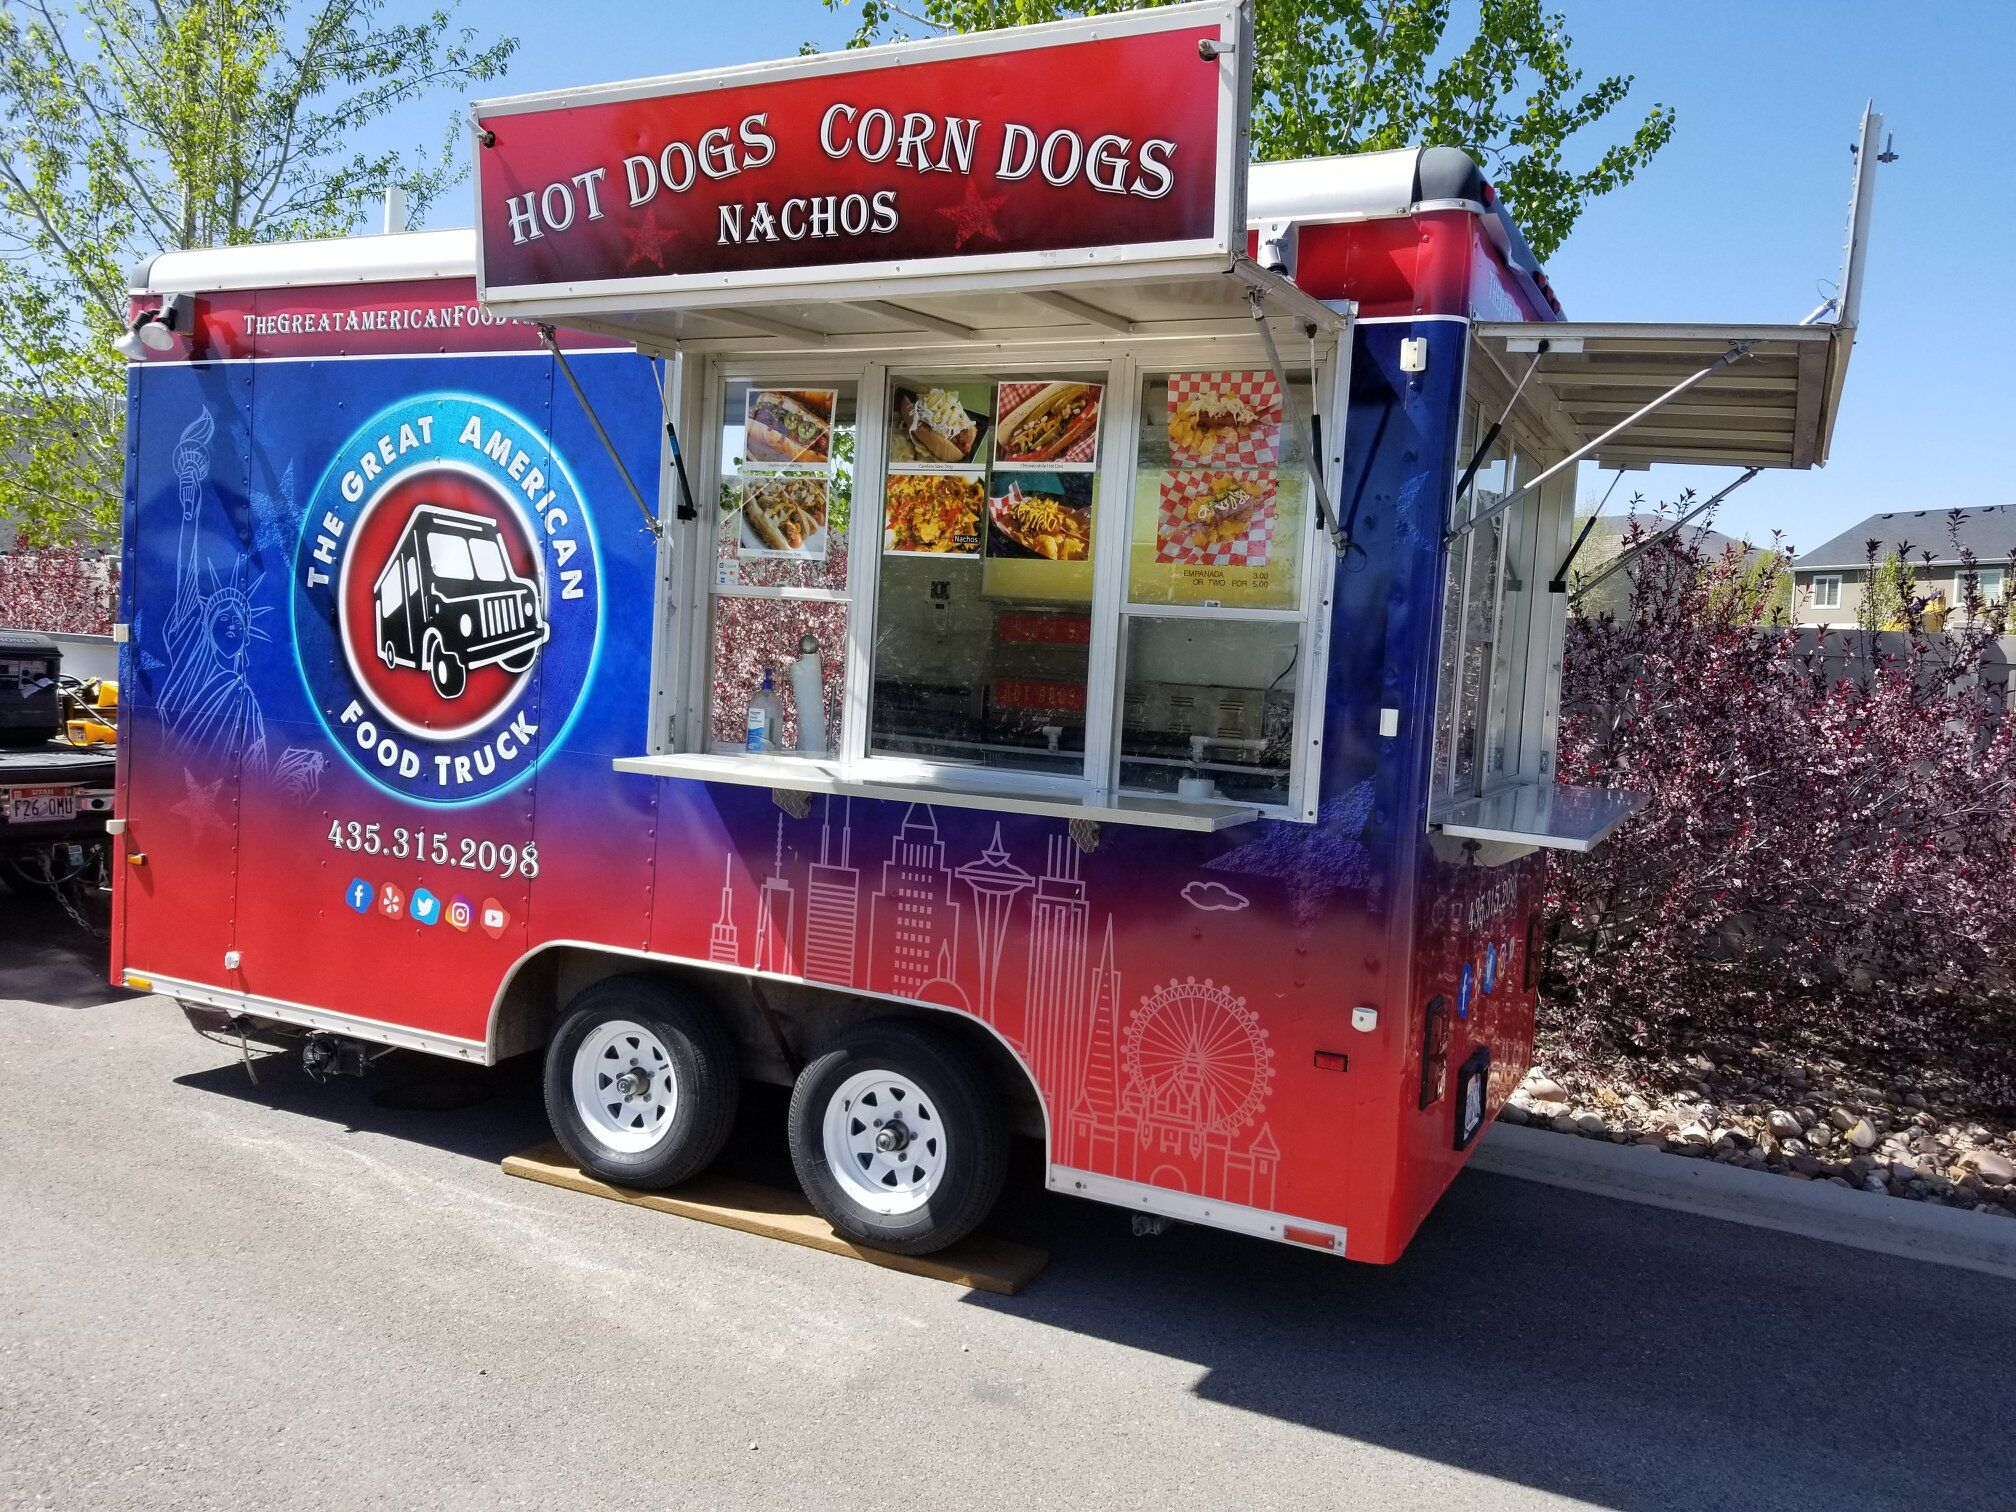 The Great American Food Truck